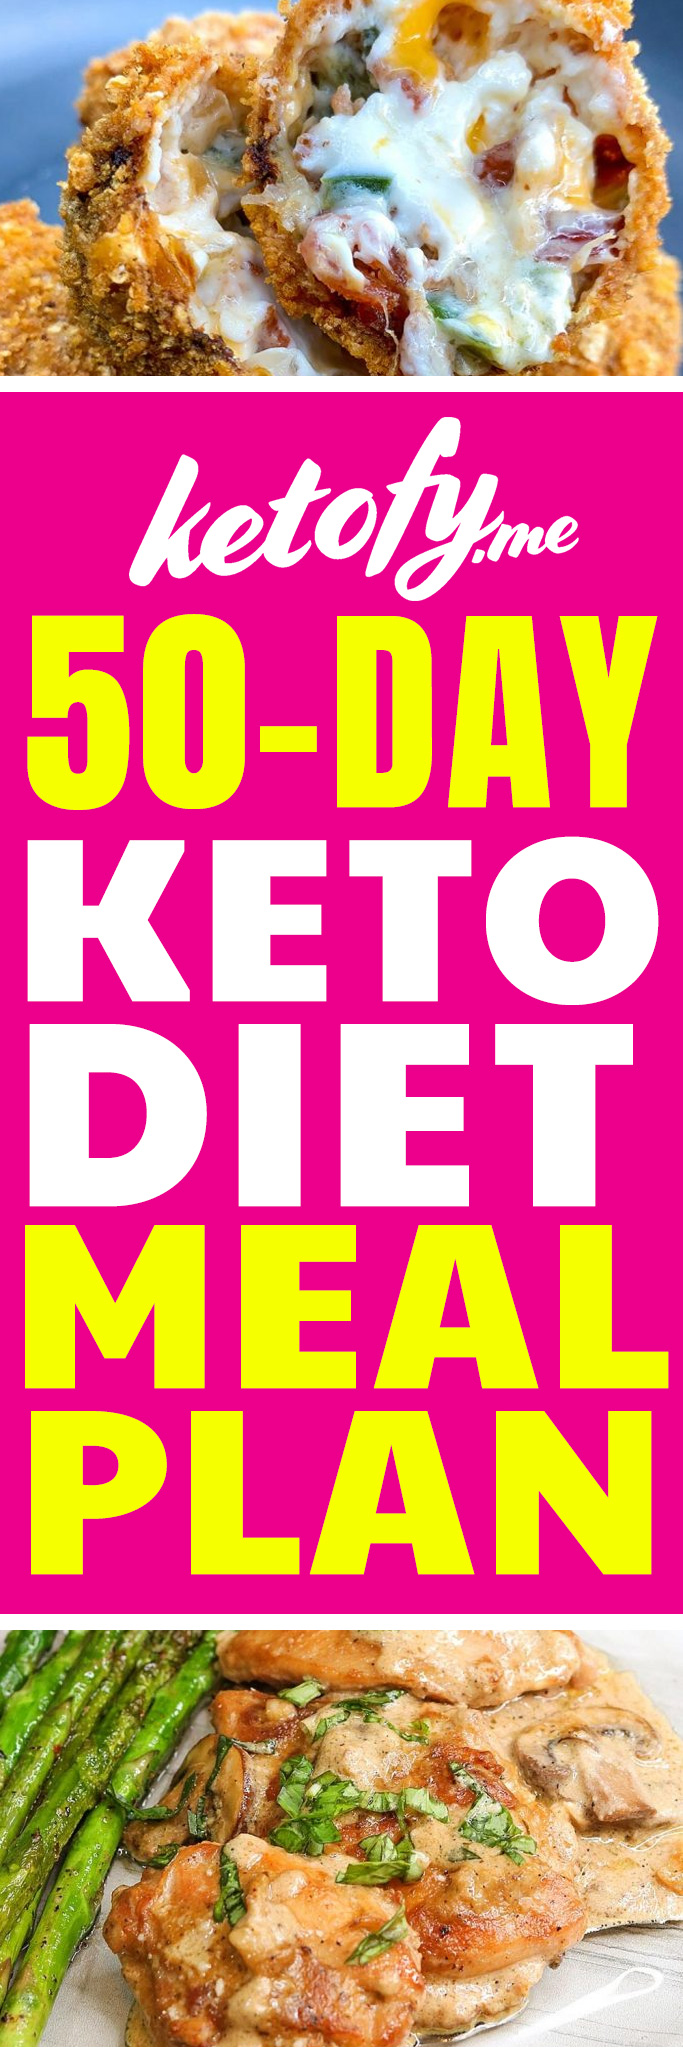 Free 50 Days Keto Meal Plan For Beginners Ketogenic Diet Meal Plan